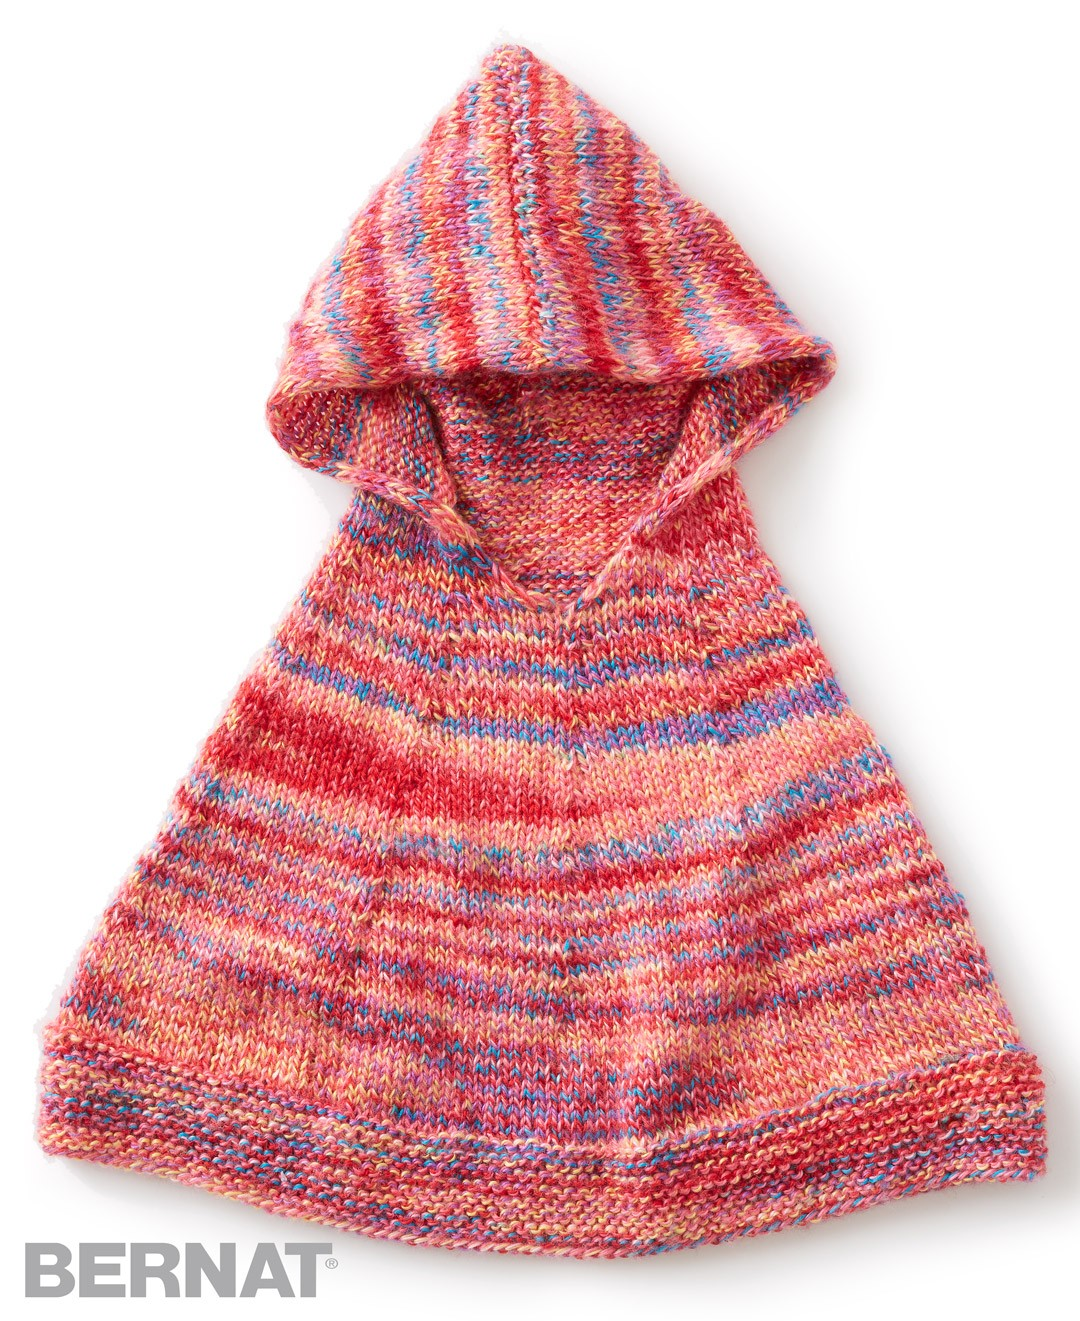 Bernat Knitting Patterns Free : Bernat Reach For The Rainbow Knit Poncho, Knit Pattern Yarnspirations